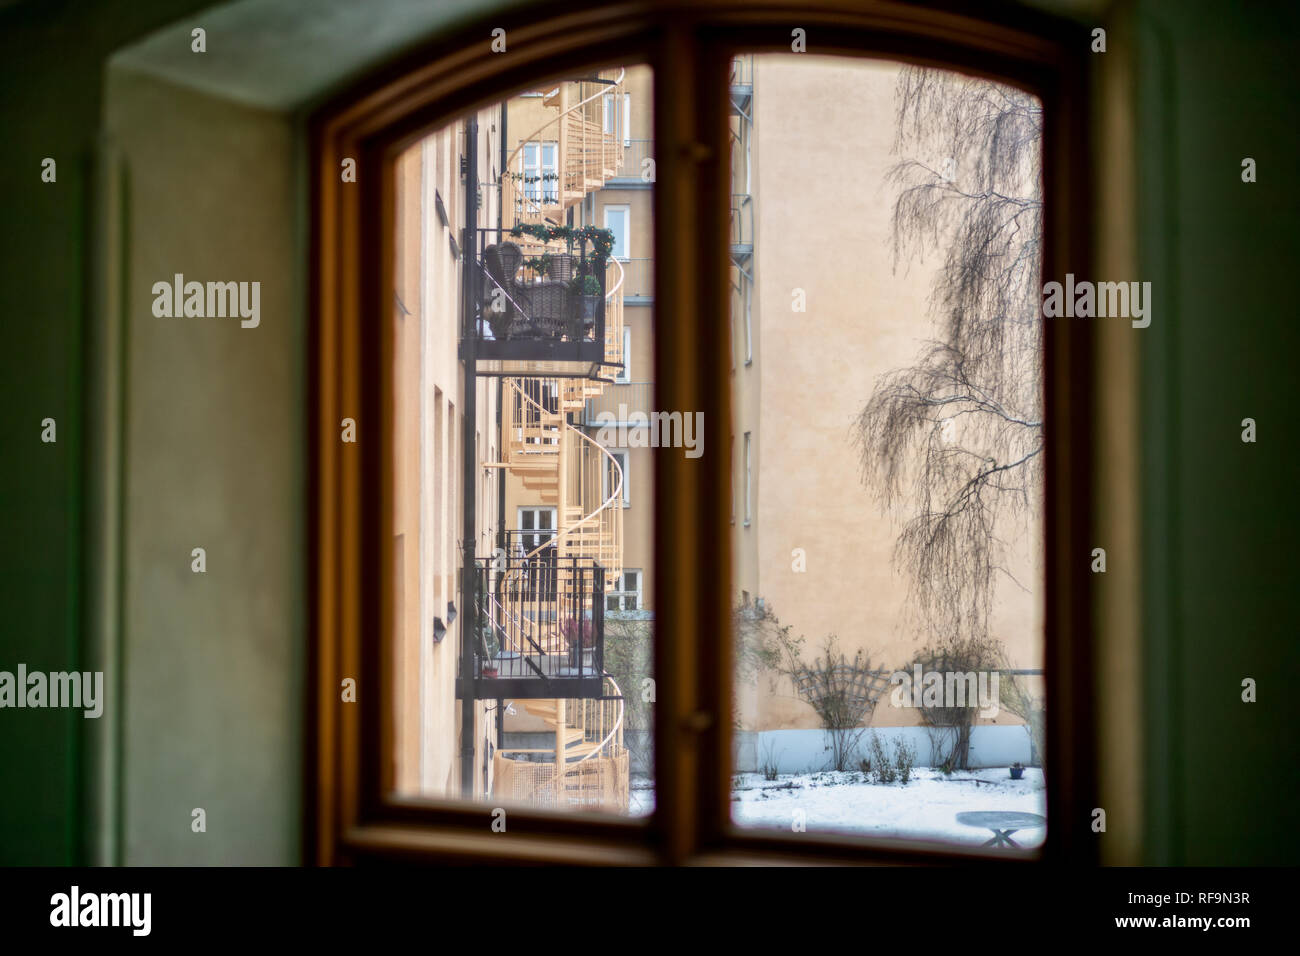 old wooden window frame in old apartment building - Stock Image